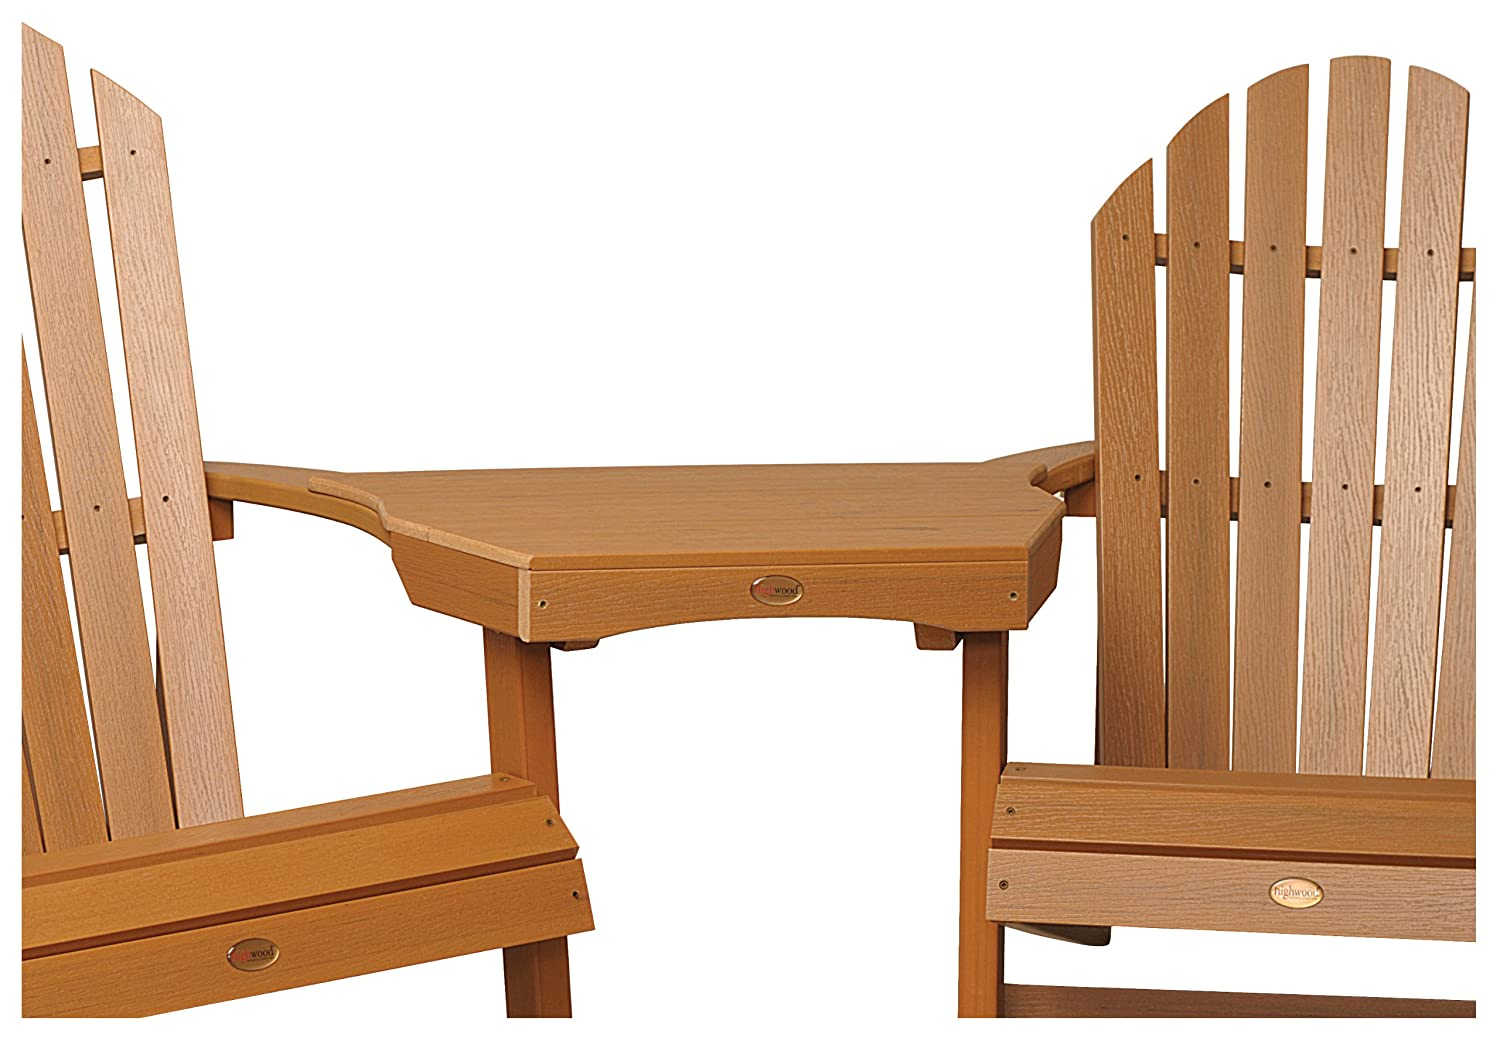 Highwood AD-CONT1-TFE Adirondack Tavolino Tête-à-tête, Legno Sintetico ed Ecologico Toffee TablesAndTables